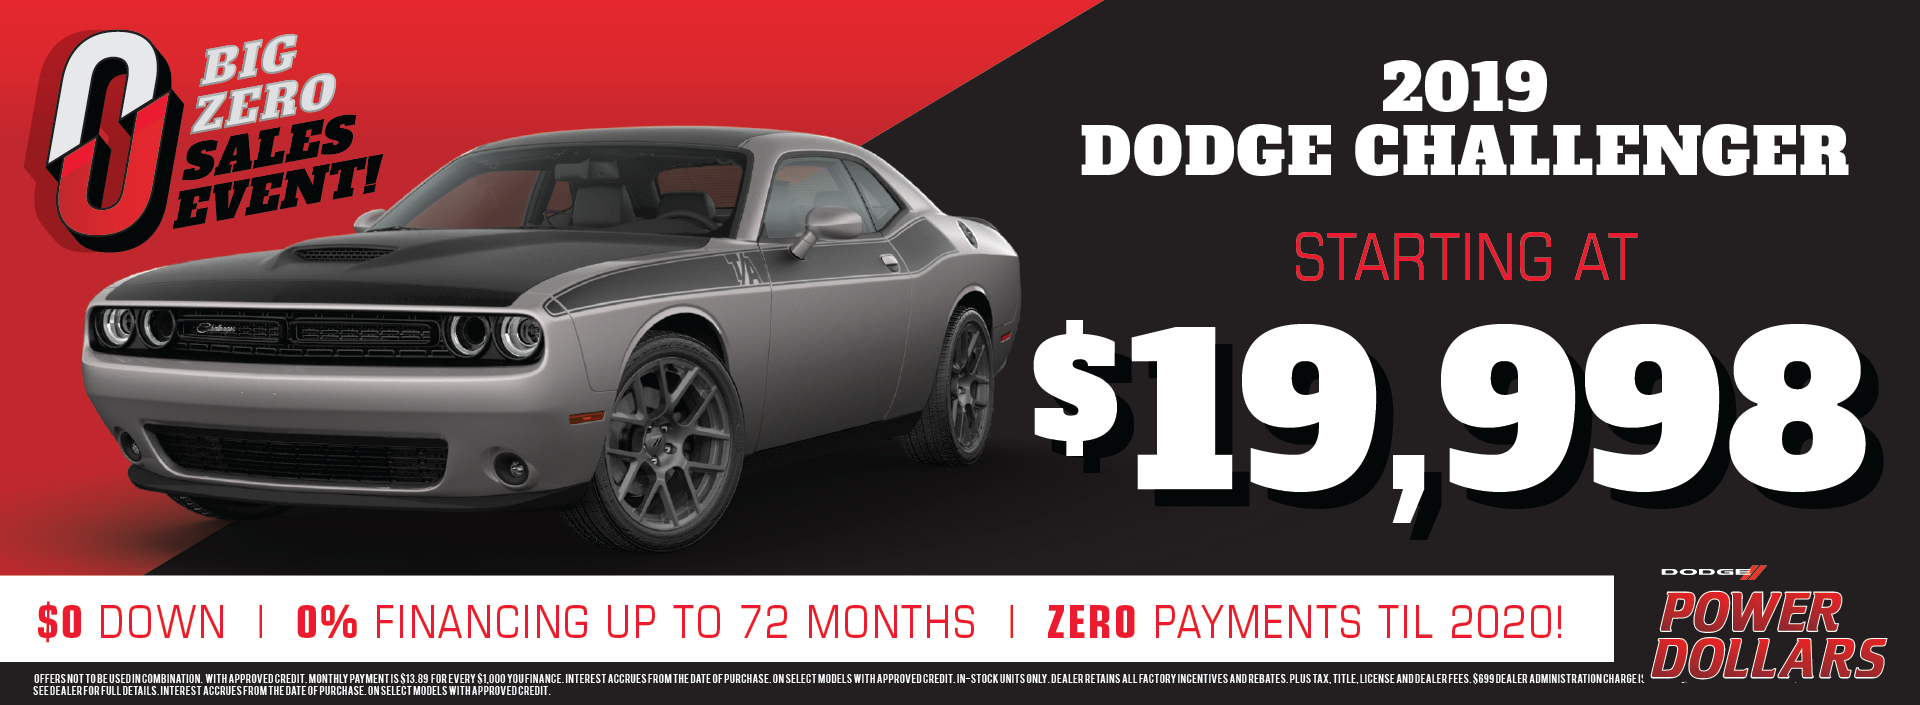 2019 Dodge Challenger offer and discount!